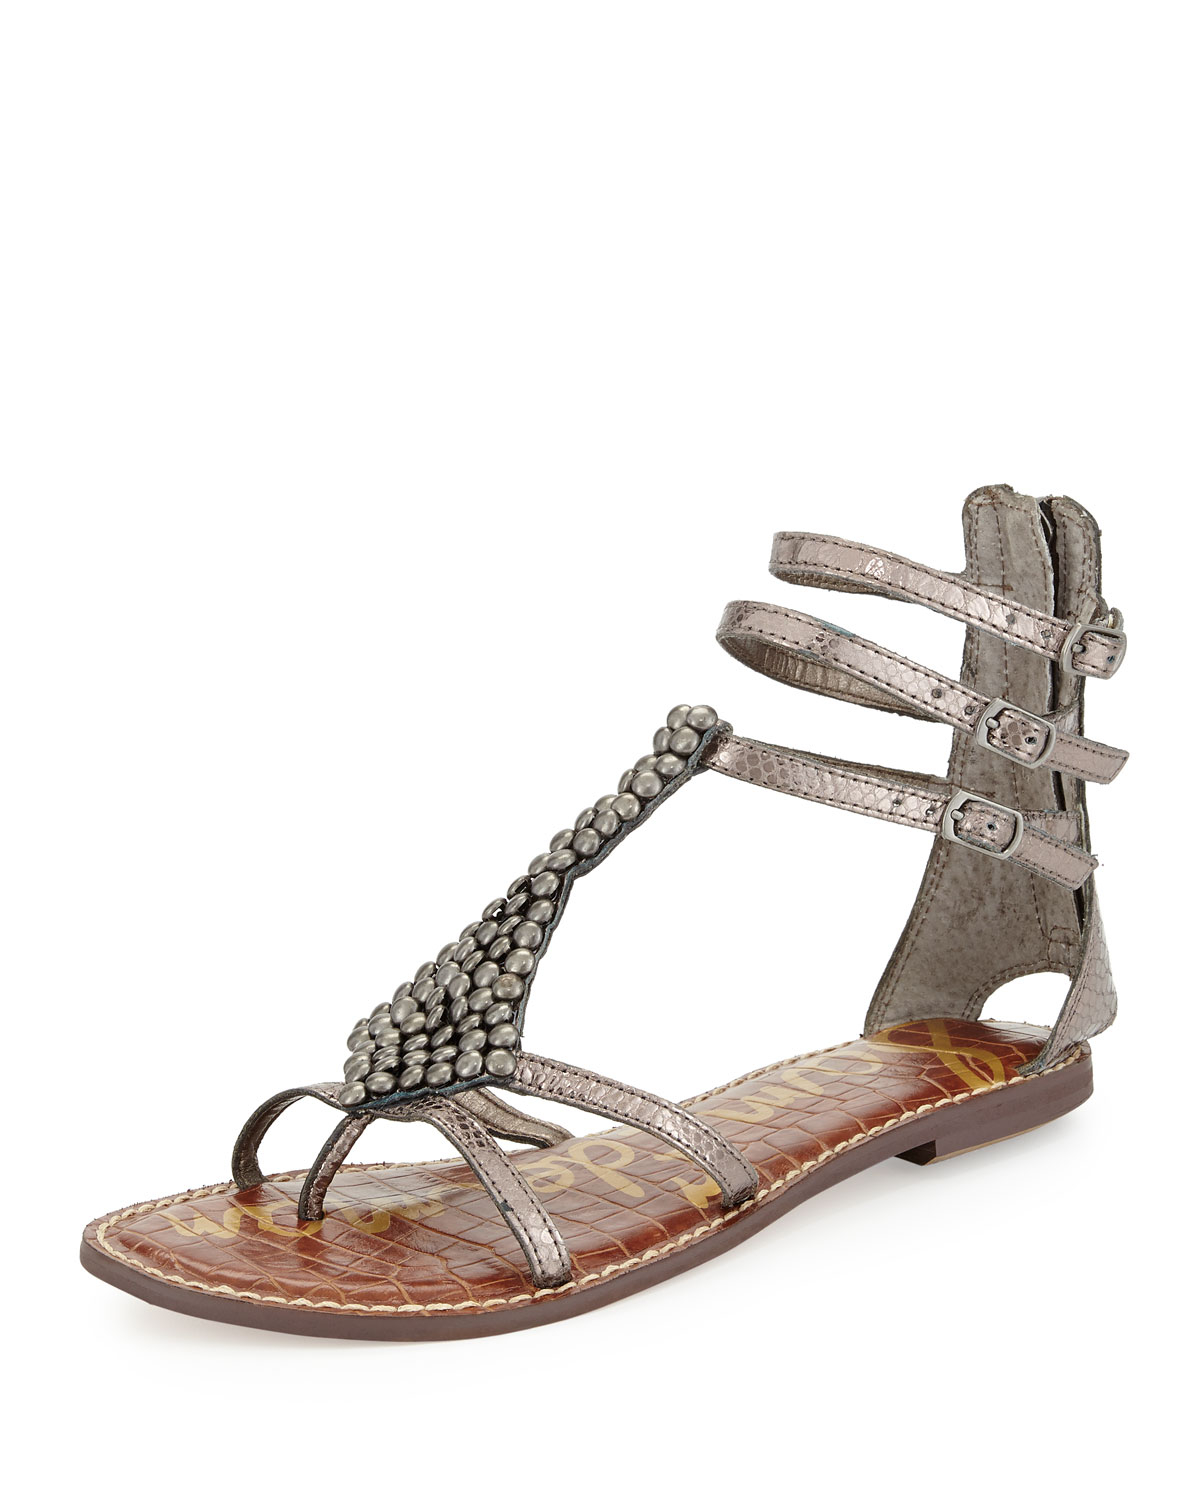 29290ec23e2 Lyst - Sam Edelman Ginger Beaded Metallic Gladiator Sandal